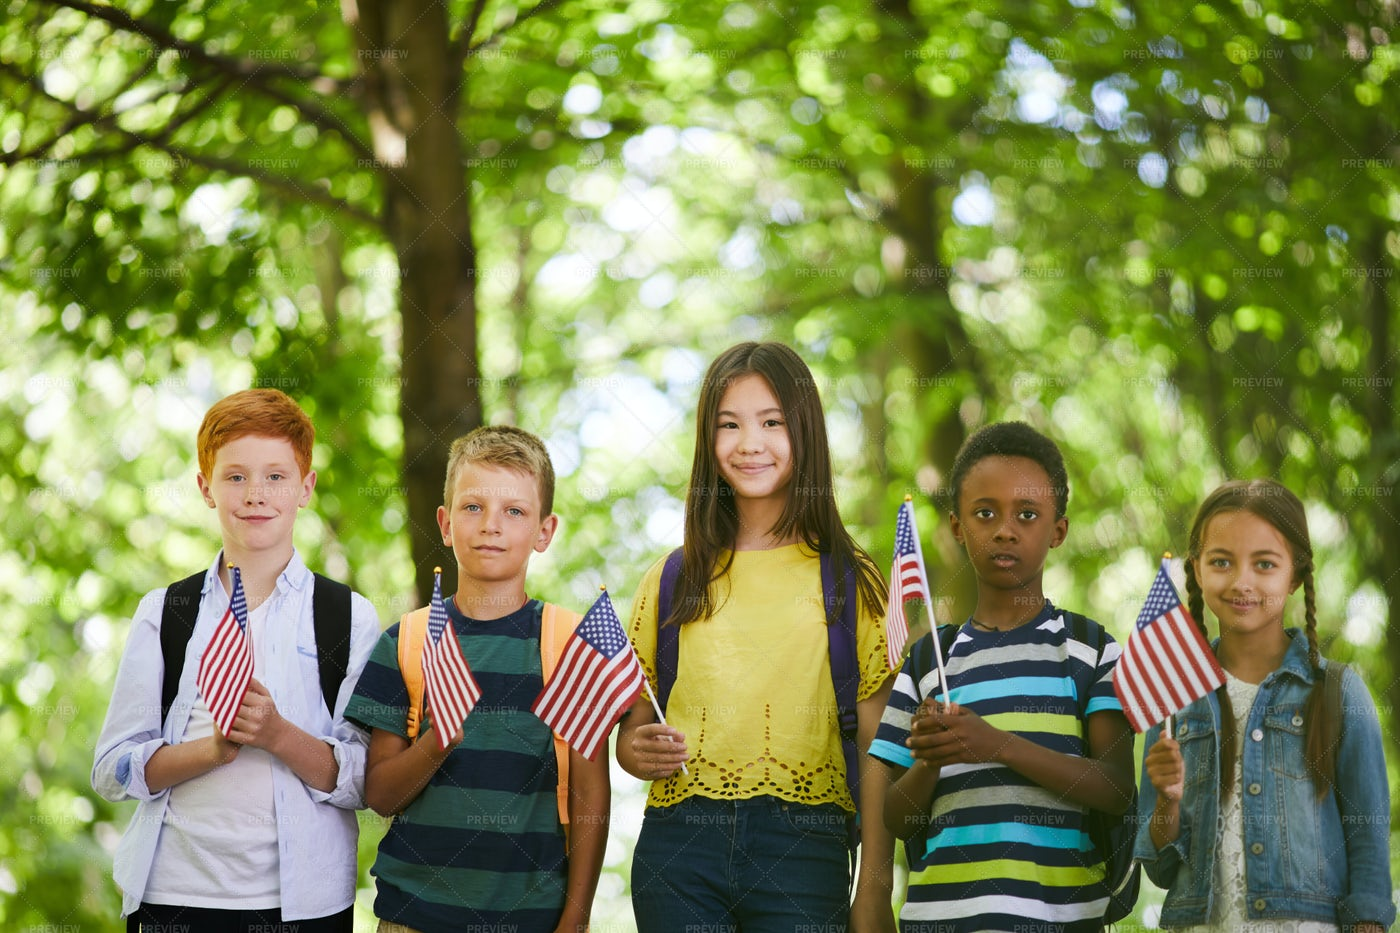 School Children With American Flags: Stock Photos